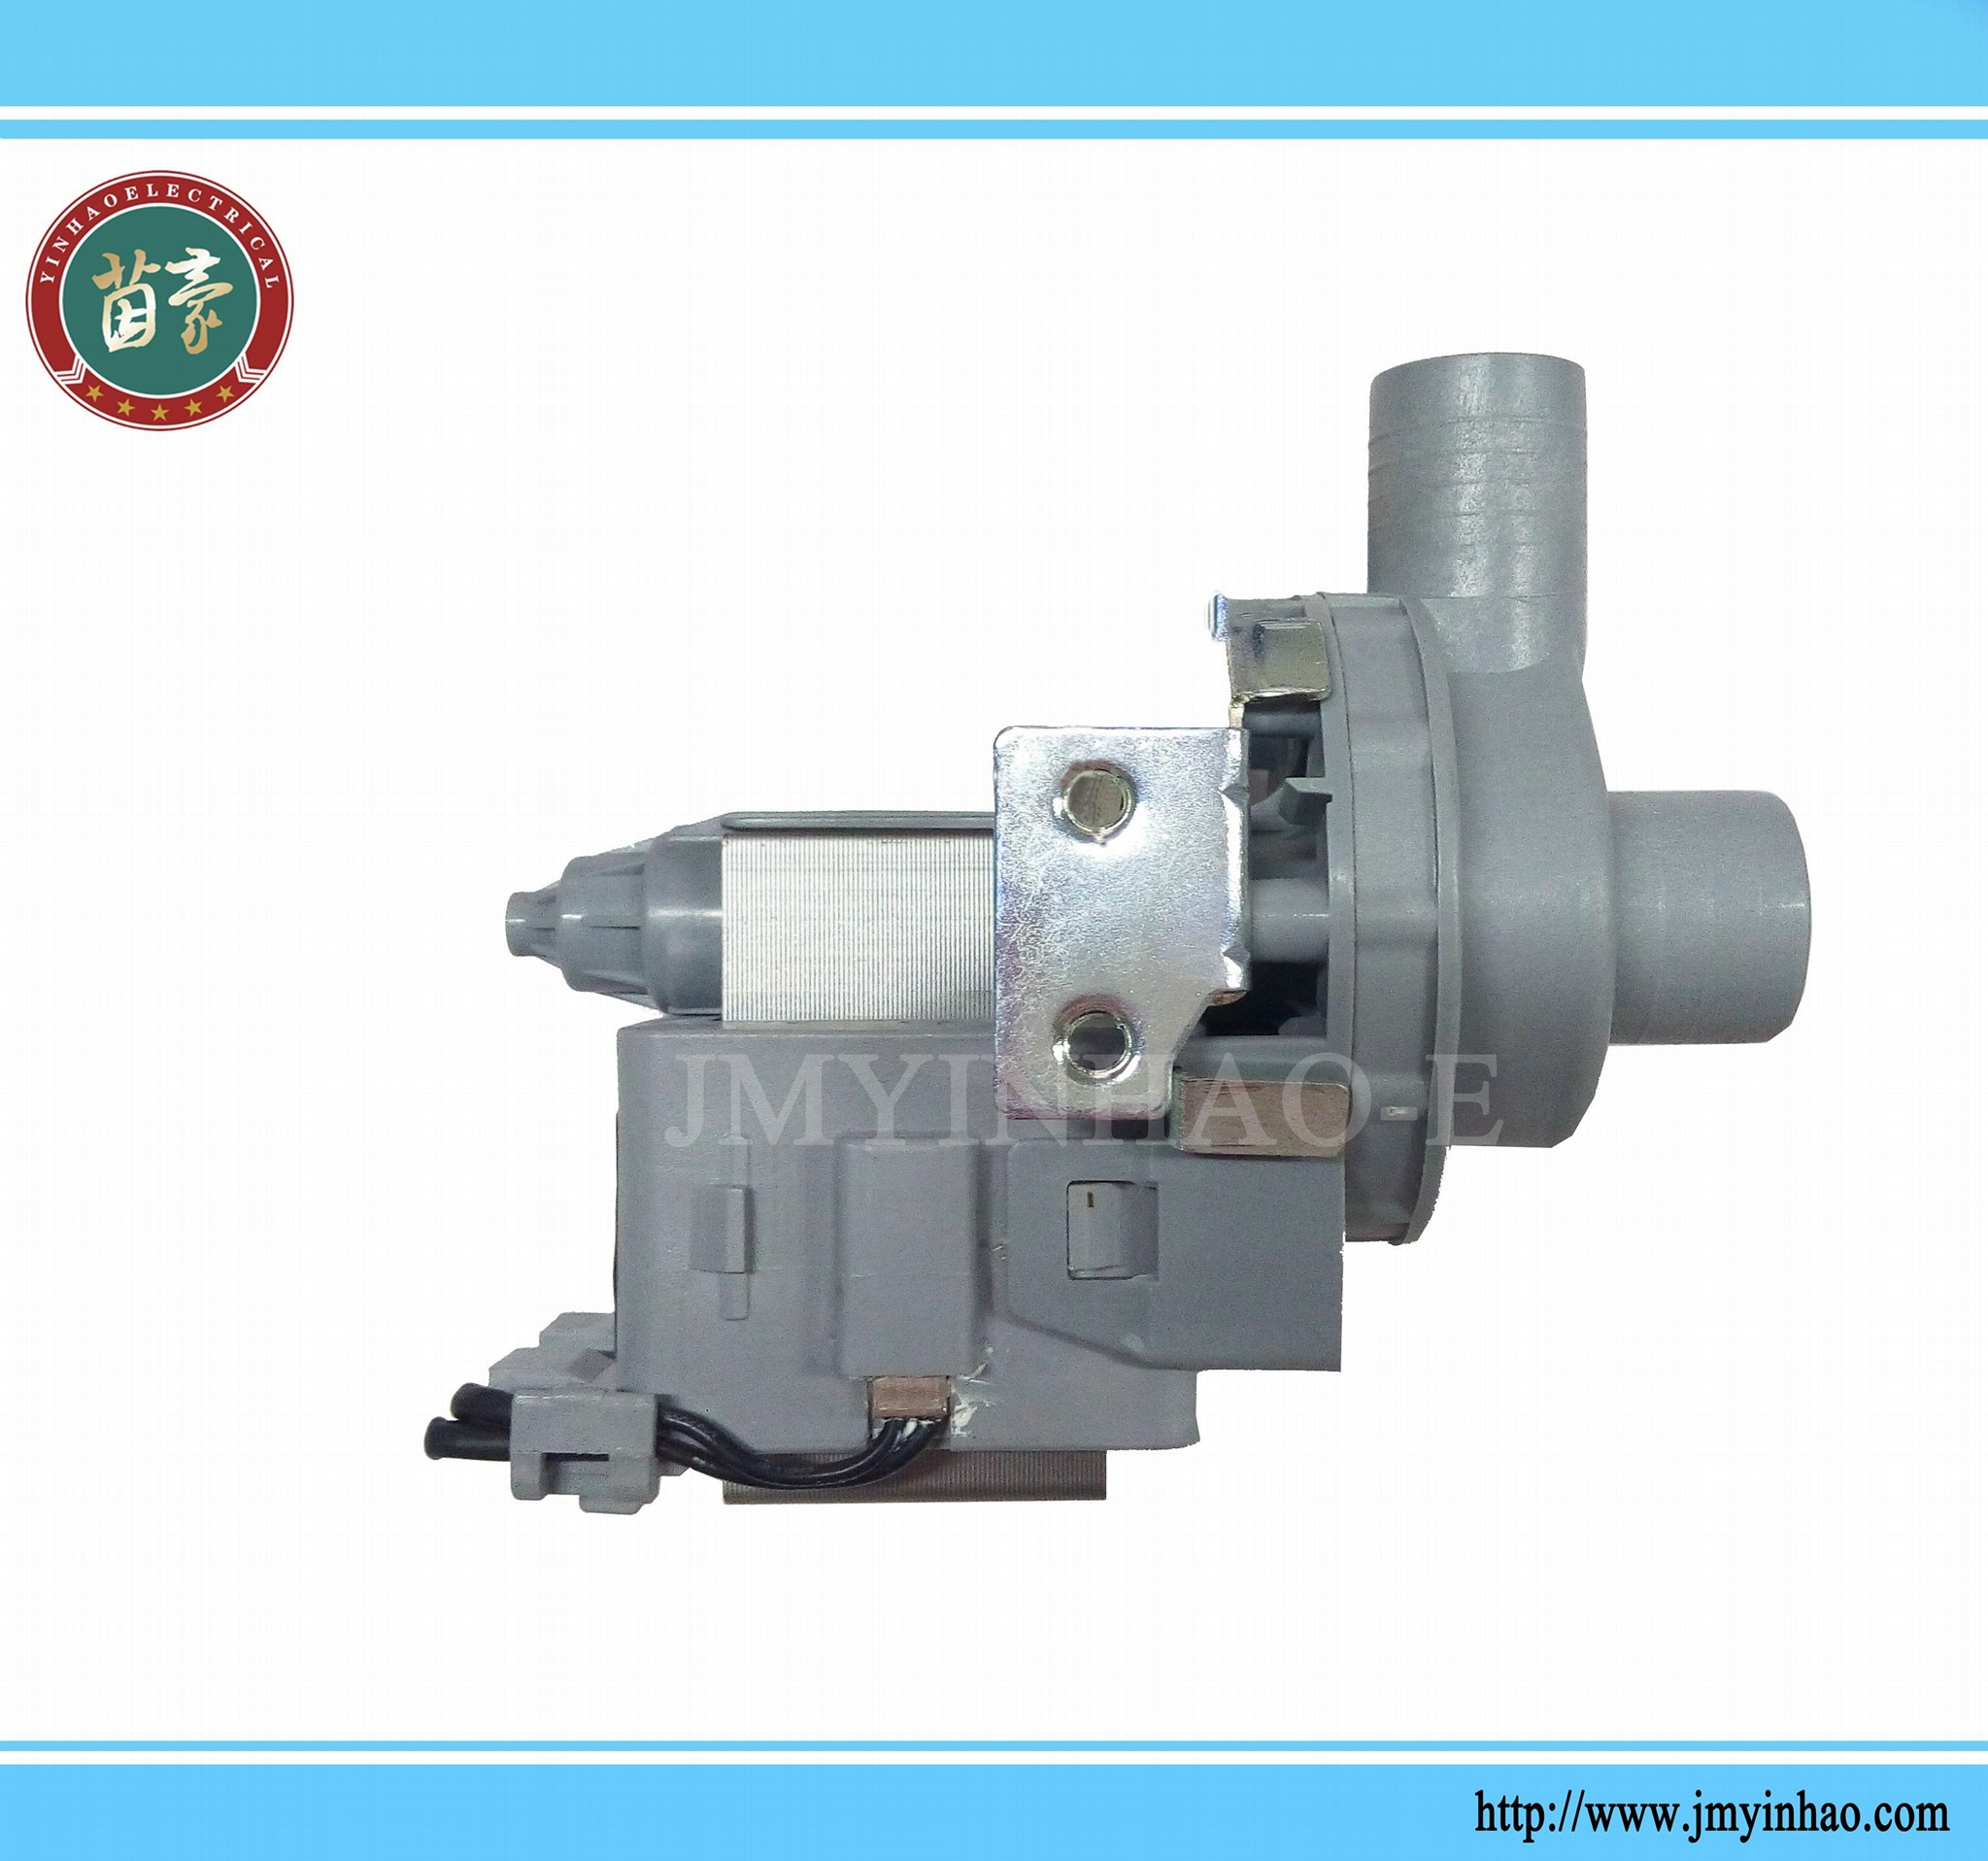 Drain Pump for Whirlpool W10276397 Washer AP4514539 PS2580215 1